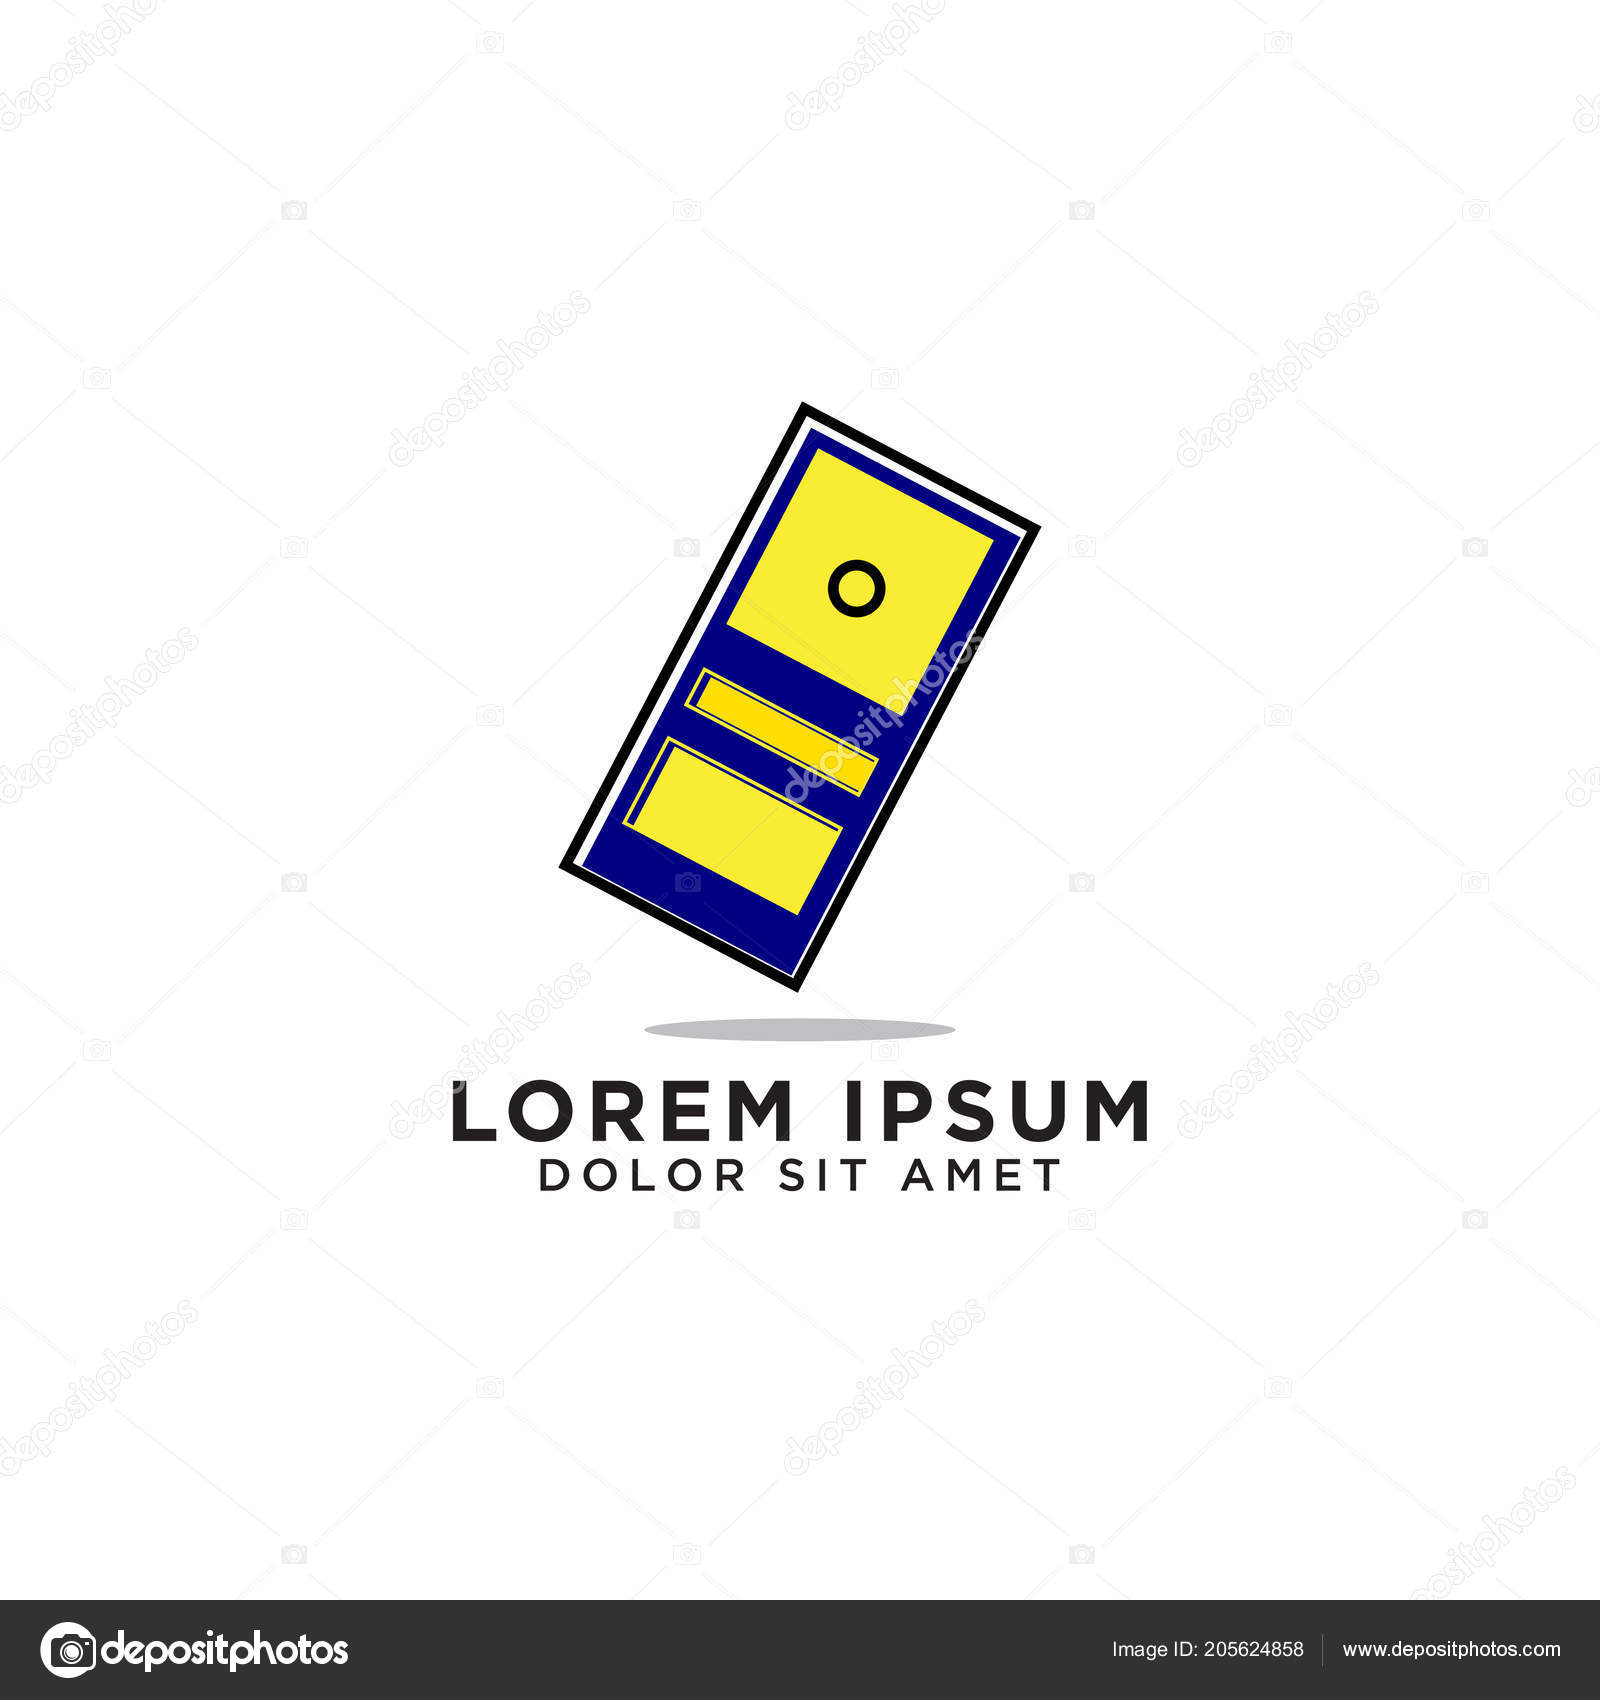 Illustration Door Logo Design Template Vector u2014 Stock Vector  sc 1 st  Depositphotos & Illustration Door Logo Design Template Vector u2014 Stock Vector ...